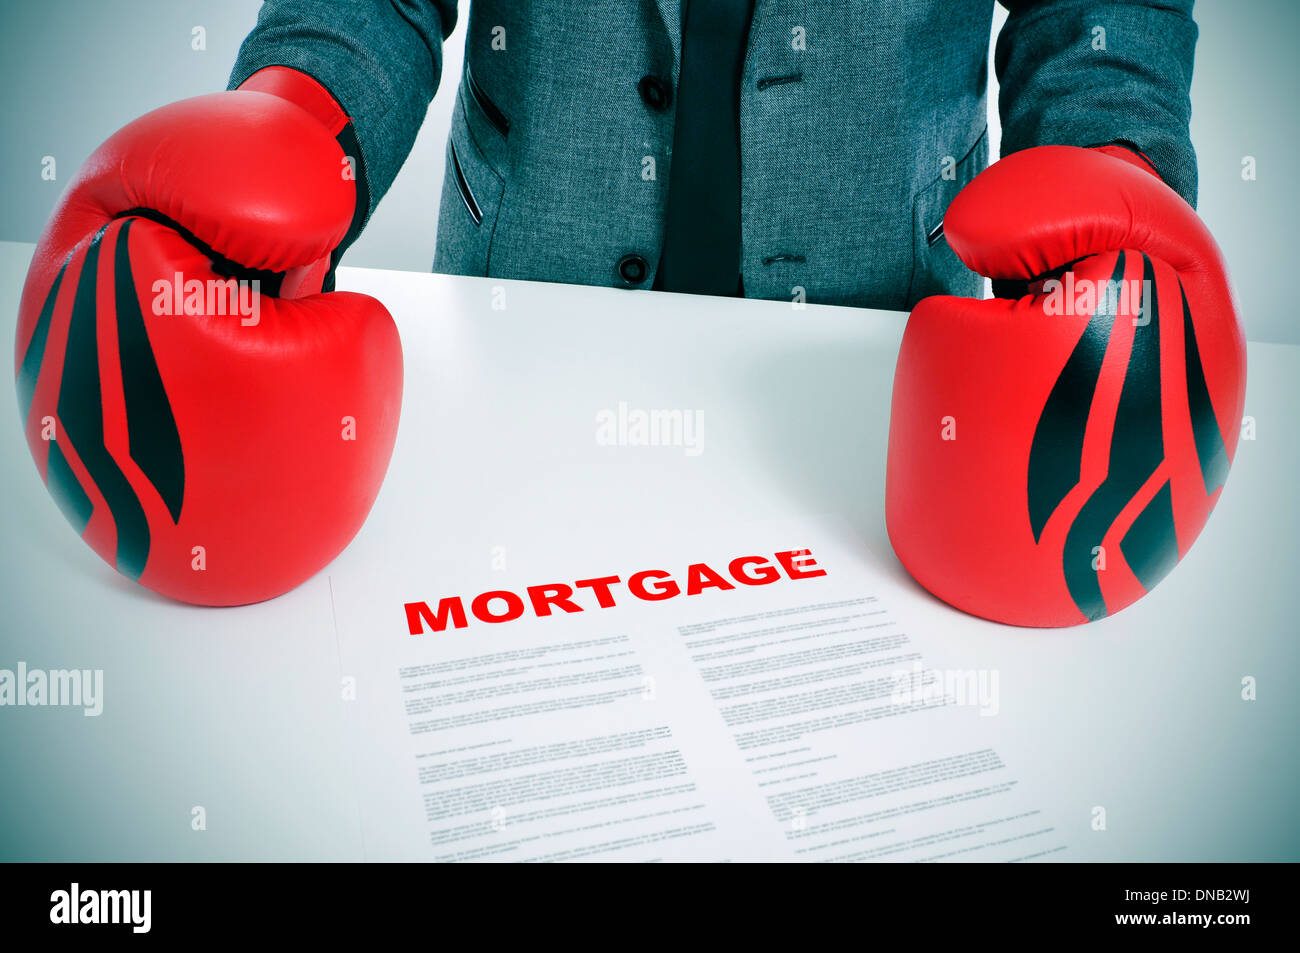 man wearing a suit and boxing gloves with a mortgage contract on his desk - Stock Image